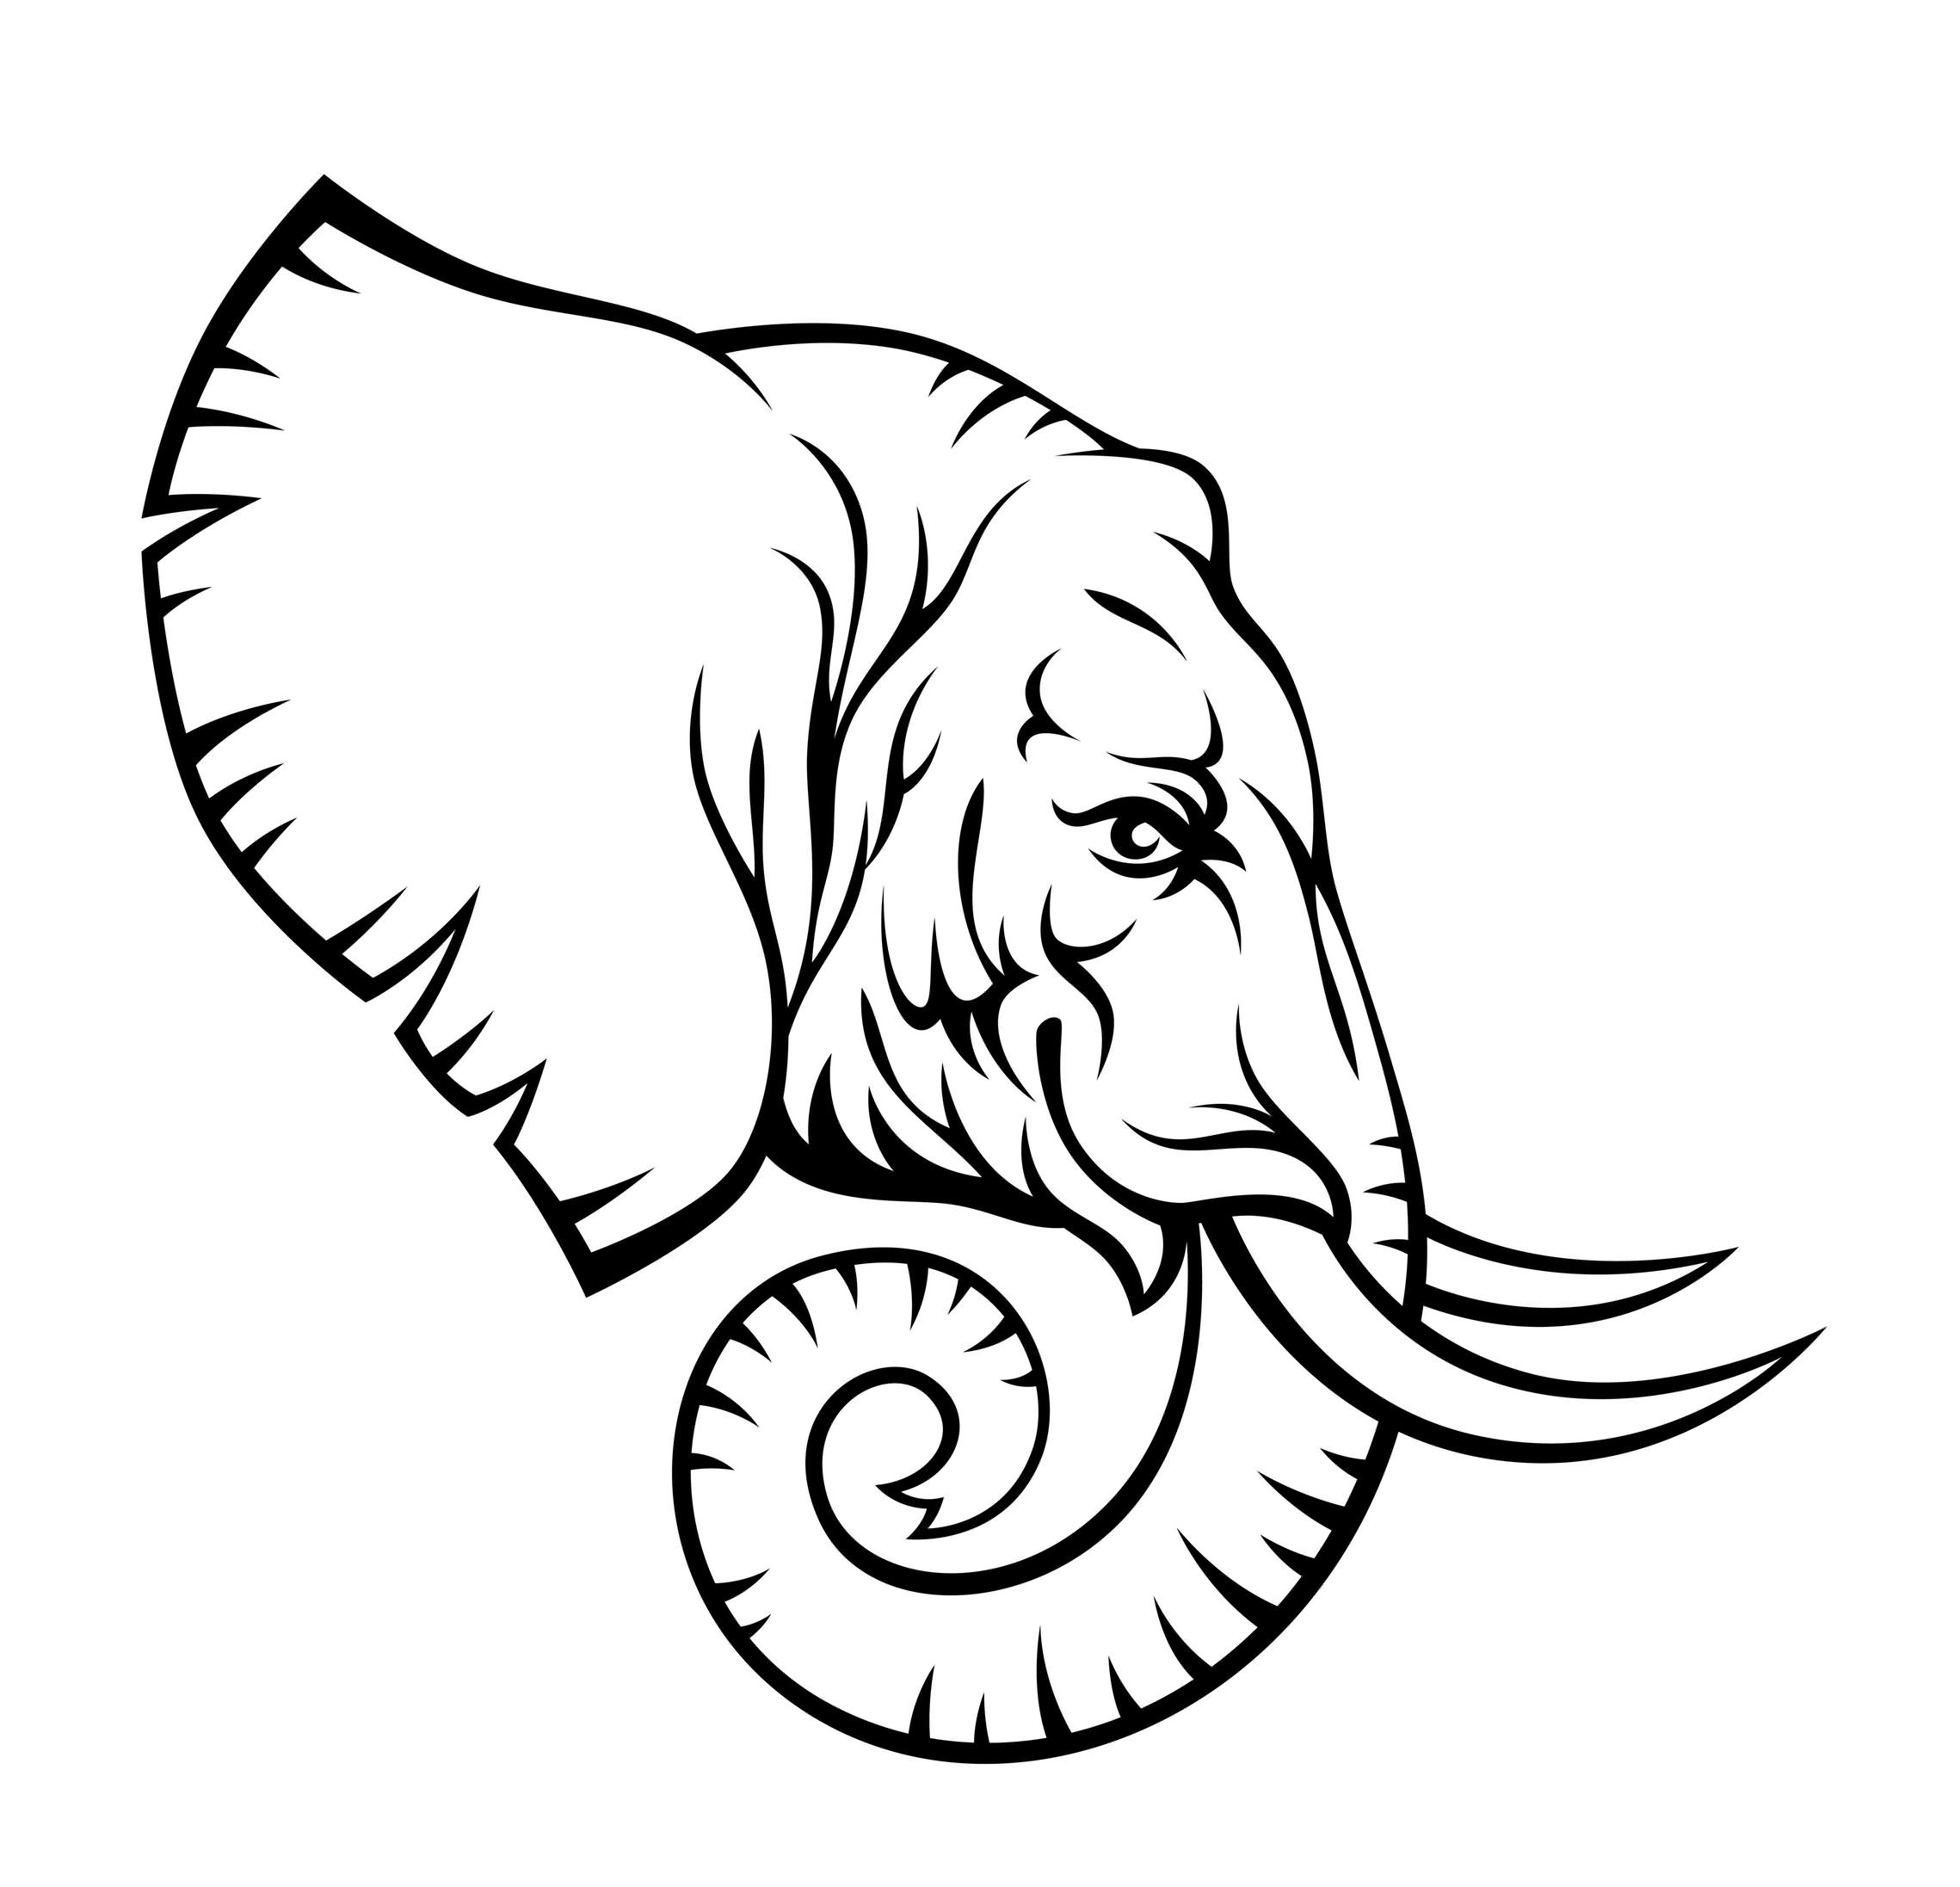 2278x2193 Simple Drawing Of An Elephant Images For Head Profile Outline